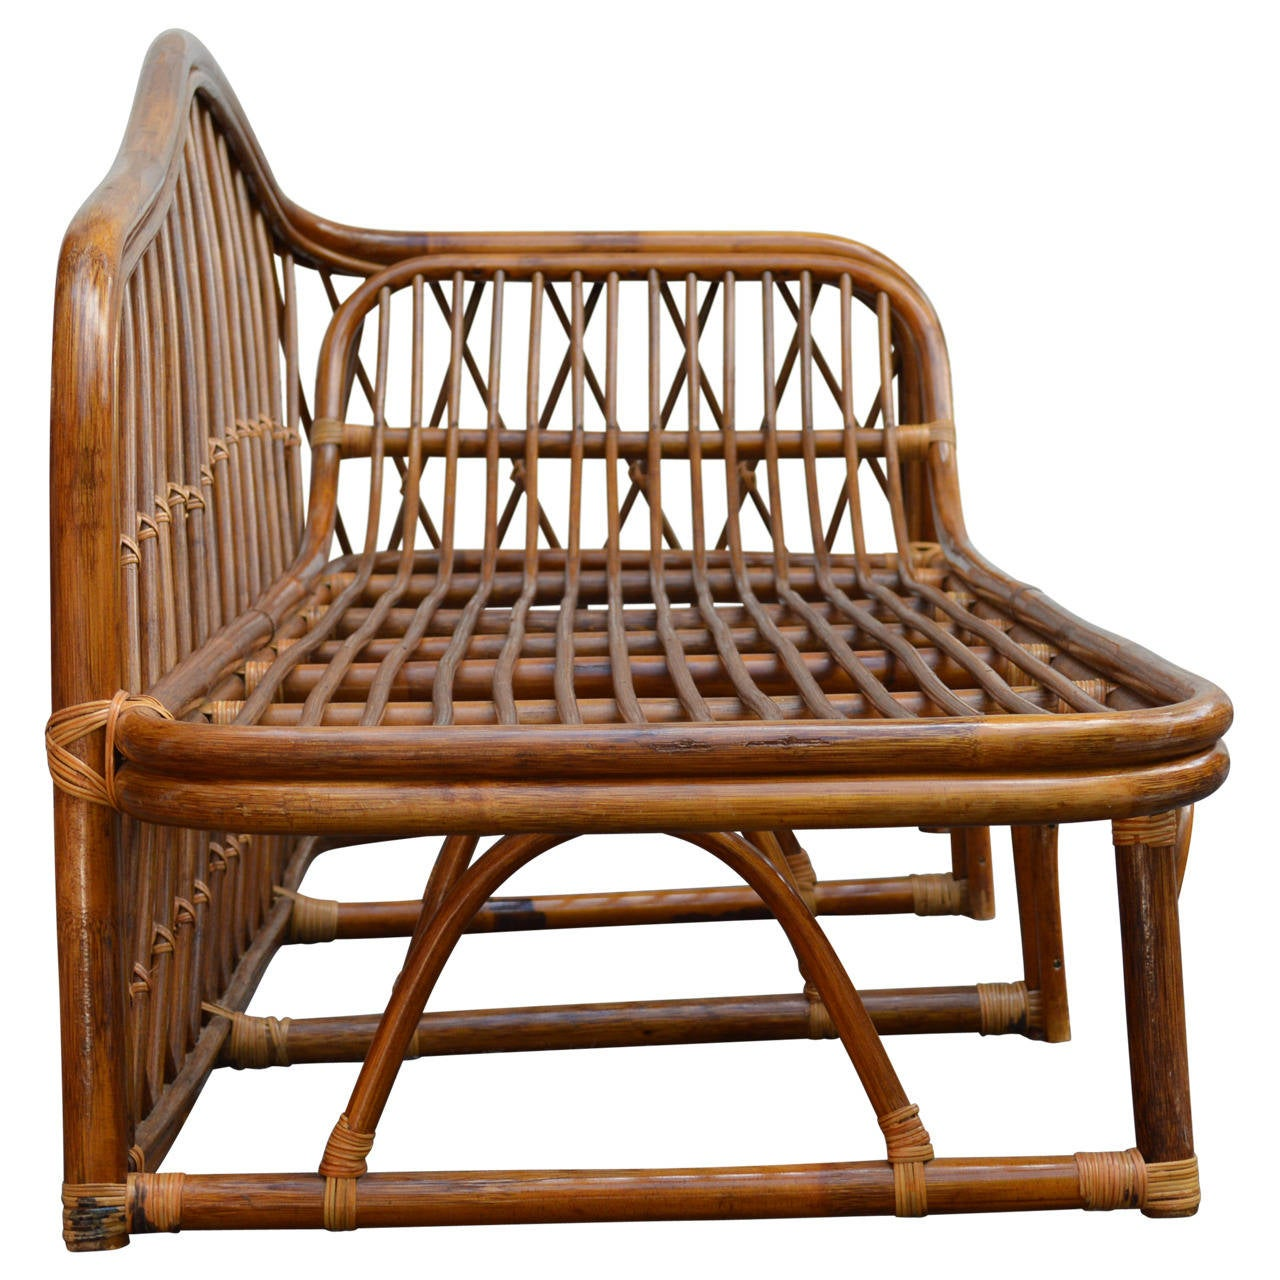 vintage rattan chaise lounge at 1stdibs. Black Bedroom Furniture Sets. Home Design Ideas